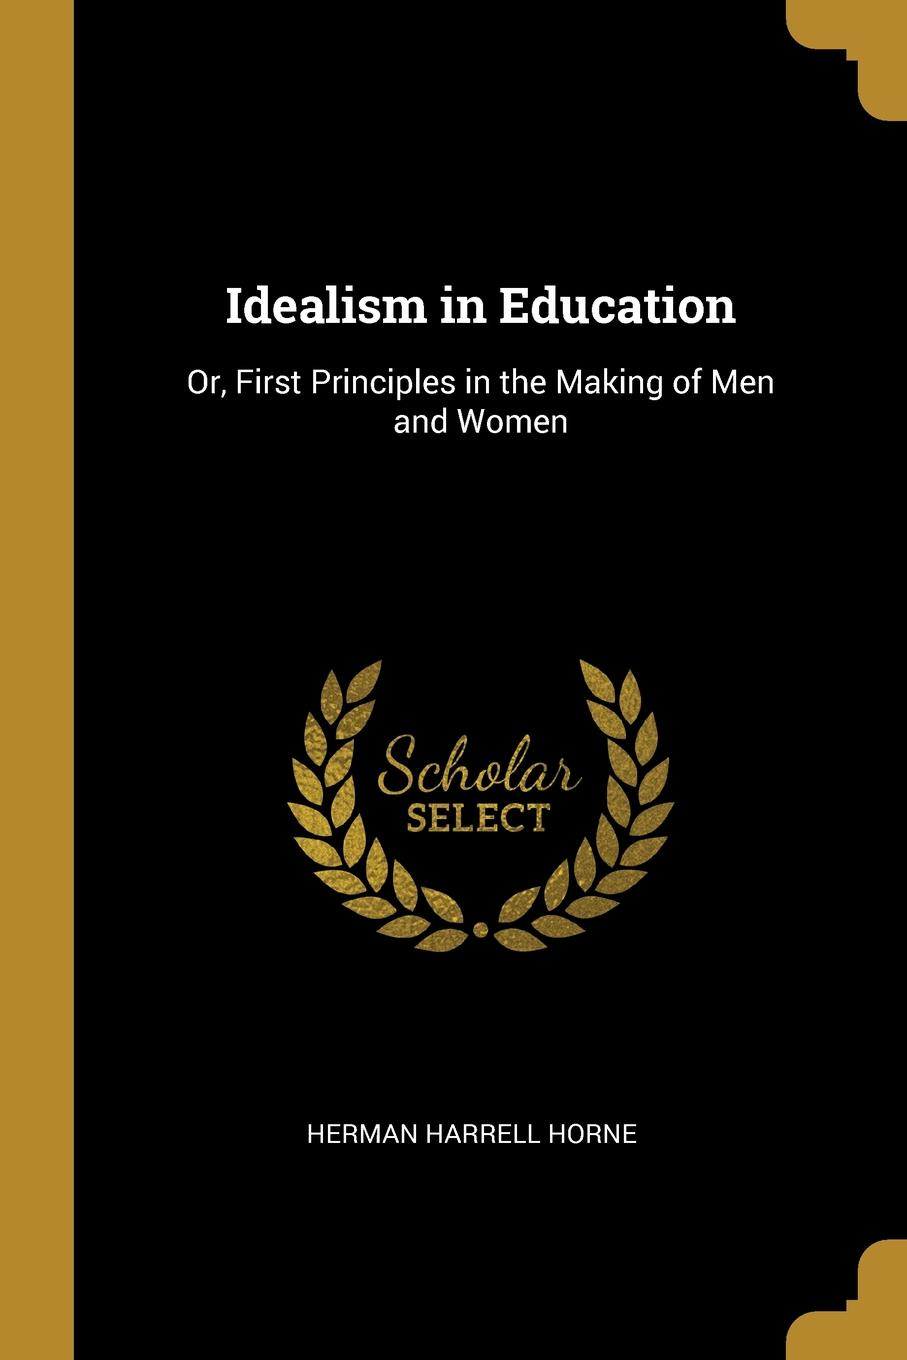 Idealism in Education. Or, First Principles in the Making of Men and Women